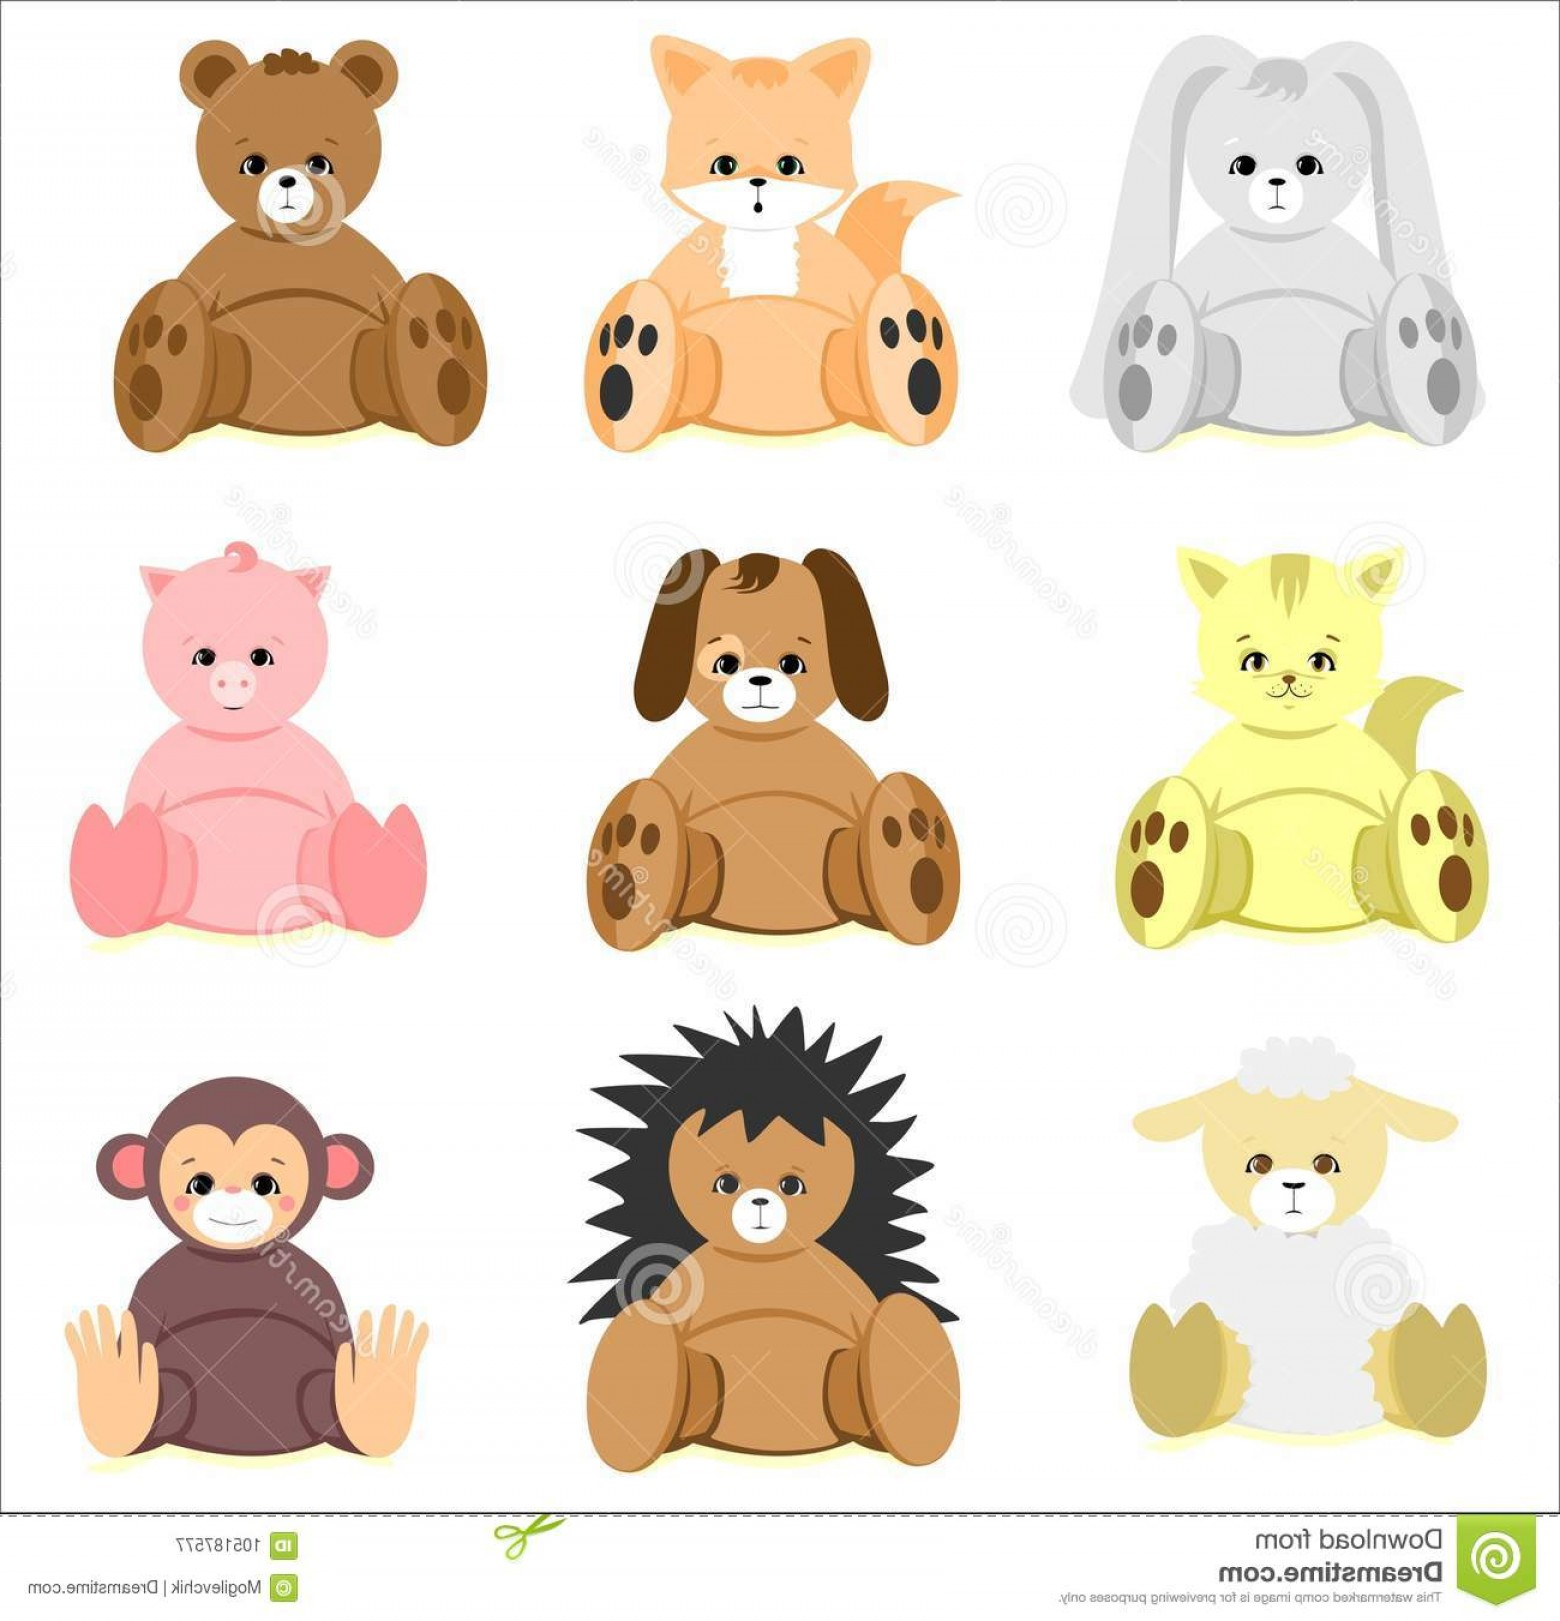 Sitting Monkey Vector Baby Shower: Colorful Baby Shower Animal Toys Set Colorful Baby Shower Animal Toys Set Rabbit Fox Bear Cat Dog Pig Sheep Hedgehog Monkey Image